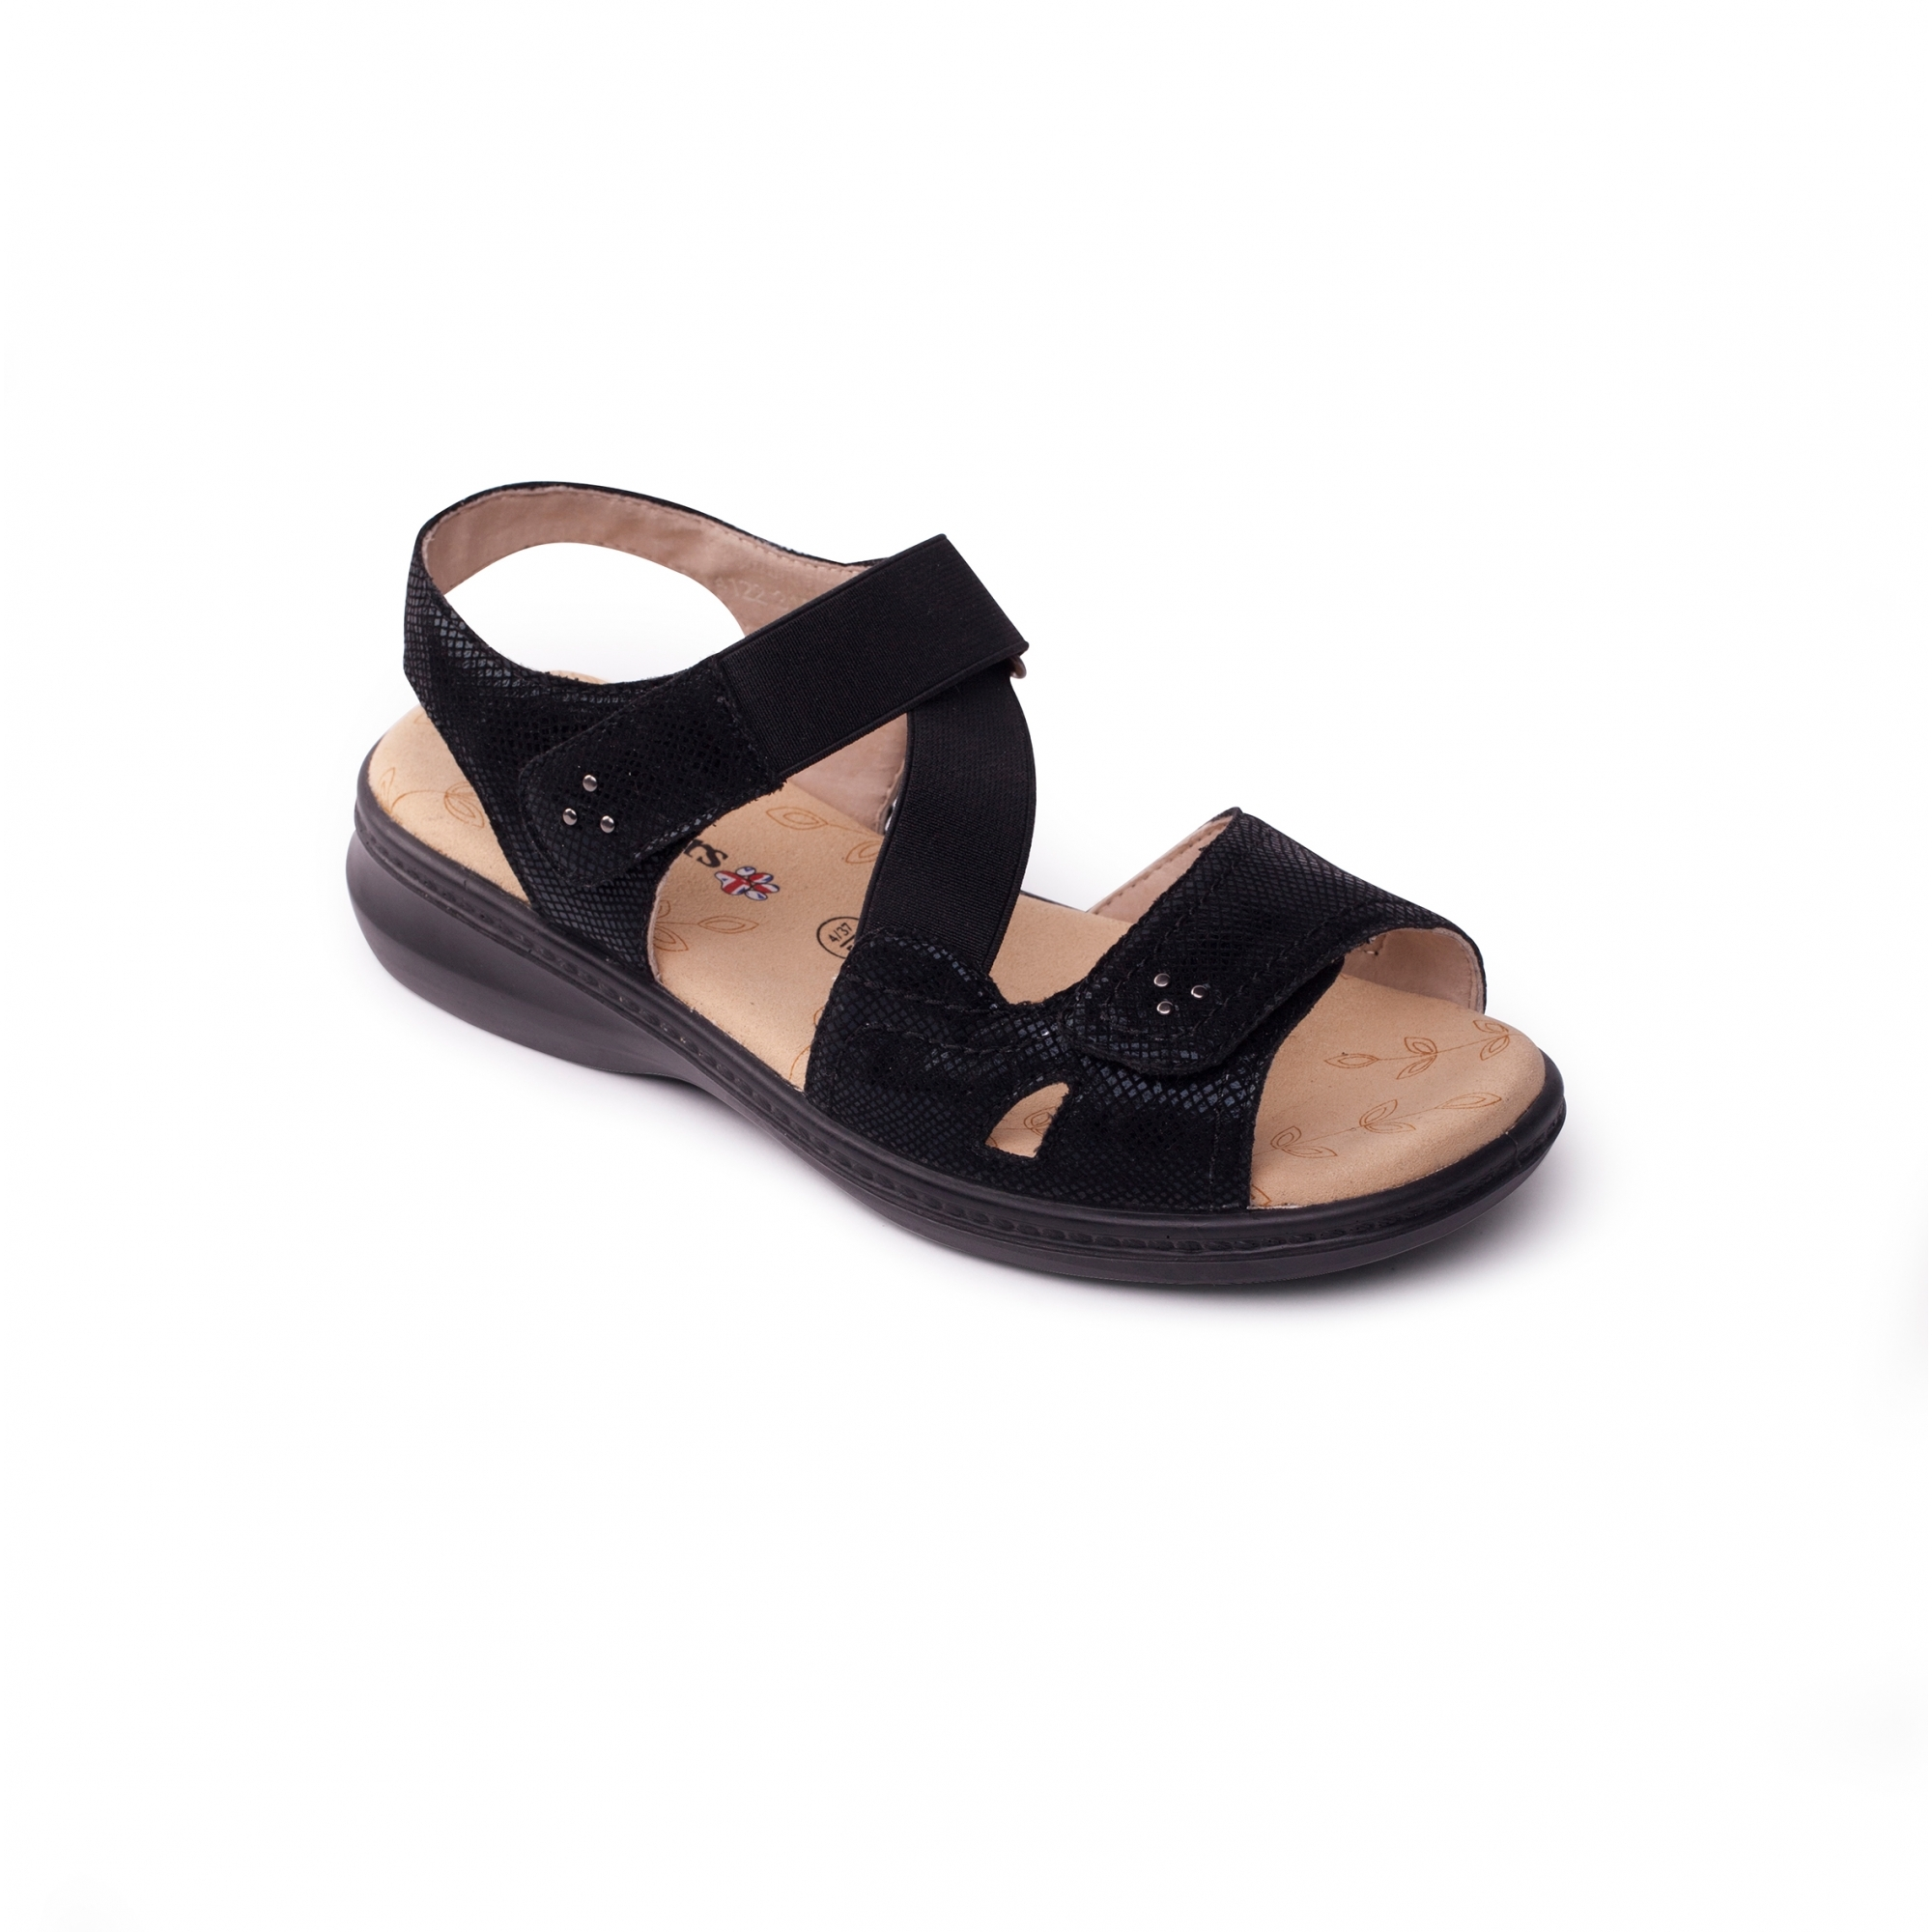 a5b4ed24d6c7a Padders LOUISE 2 Ladies Extra Wide Plus Velcro Sandals Black   Shuperb